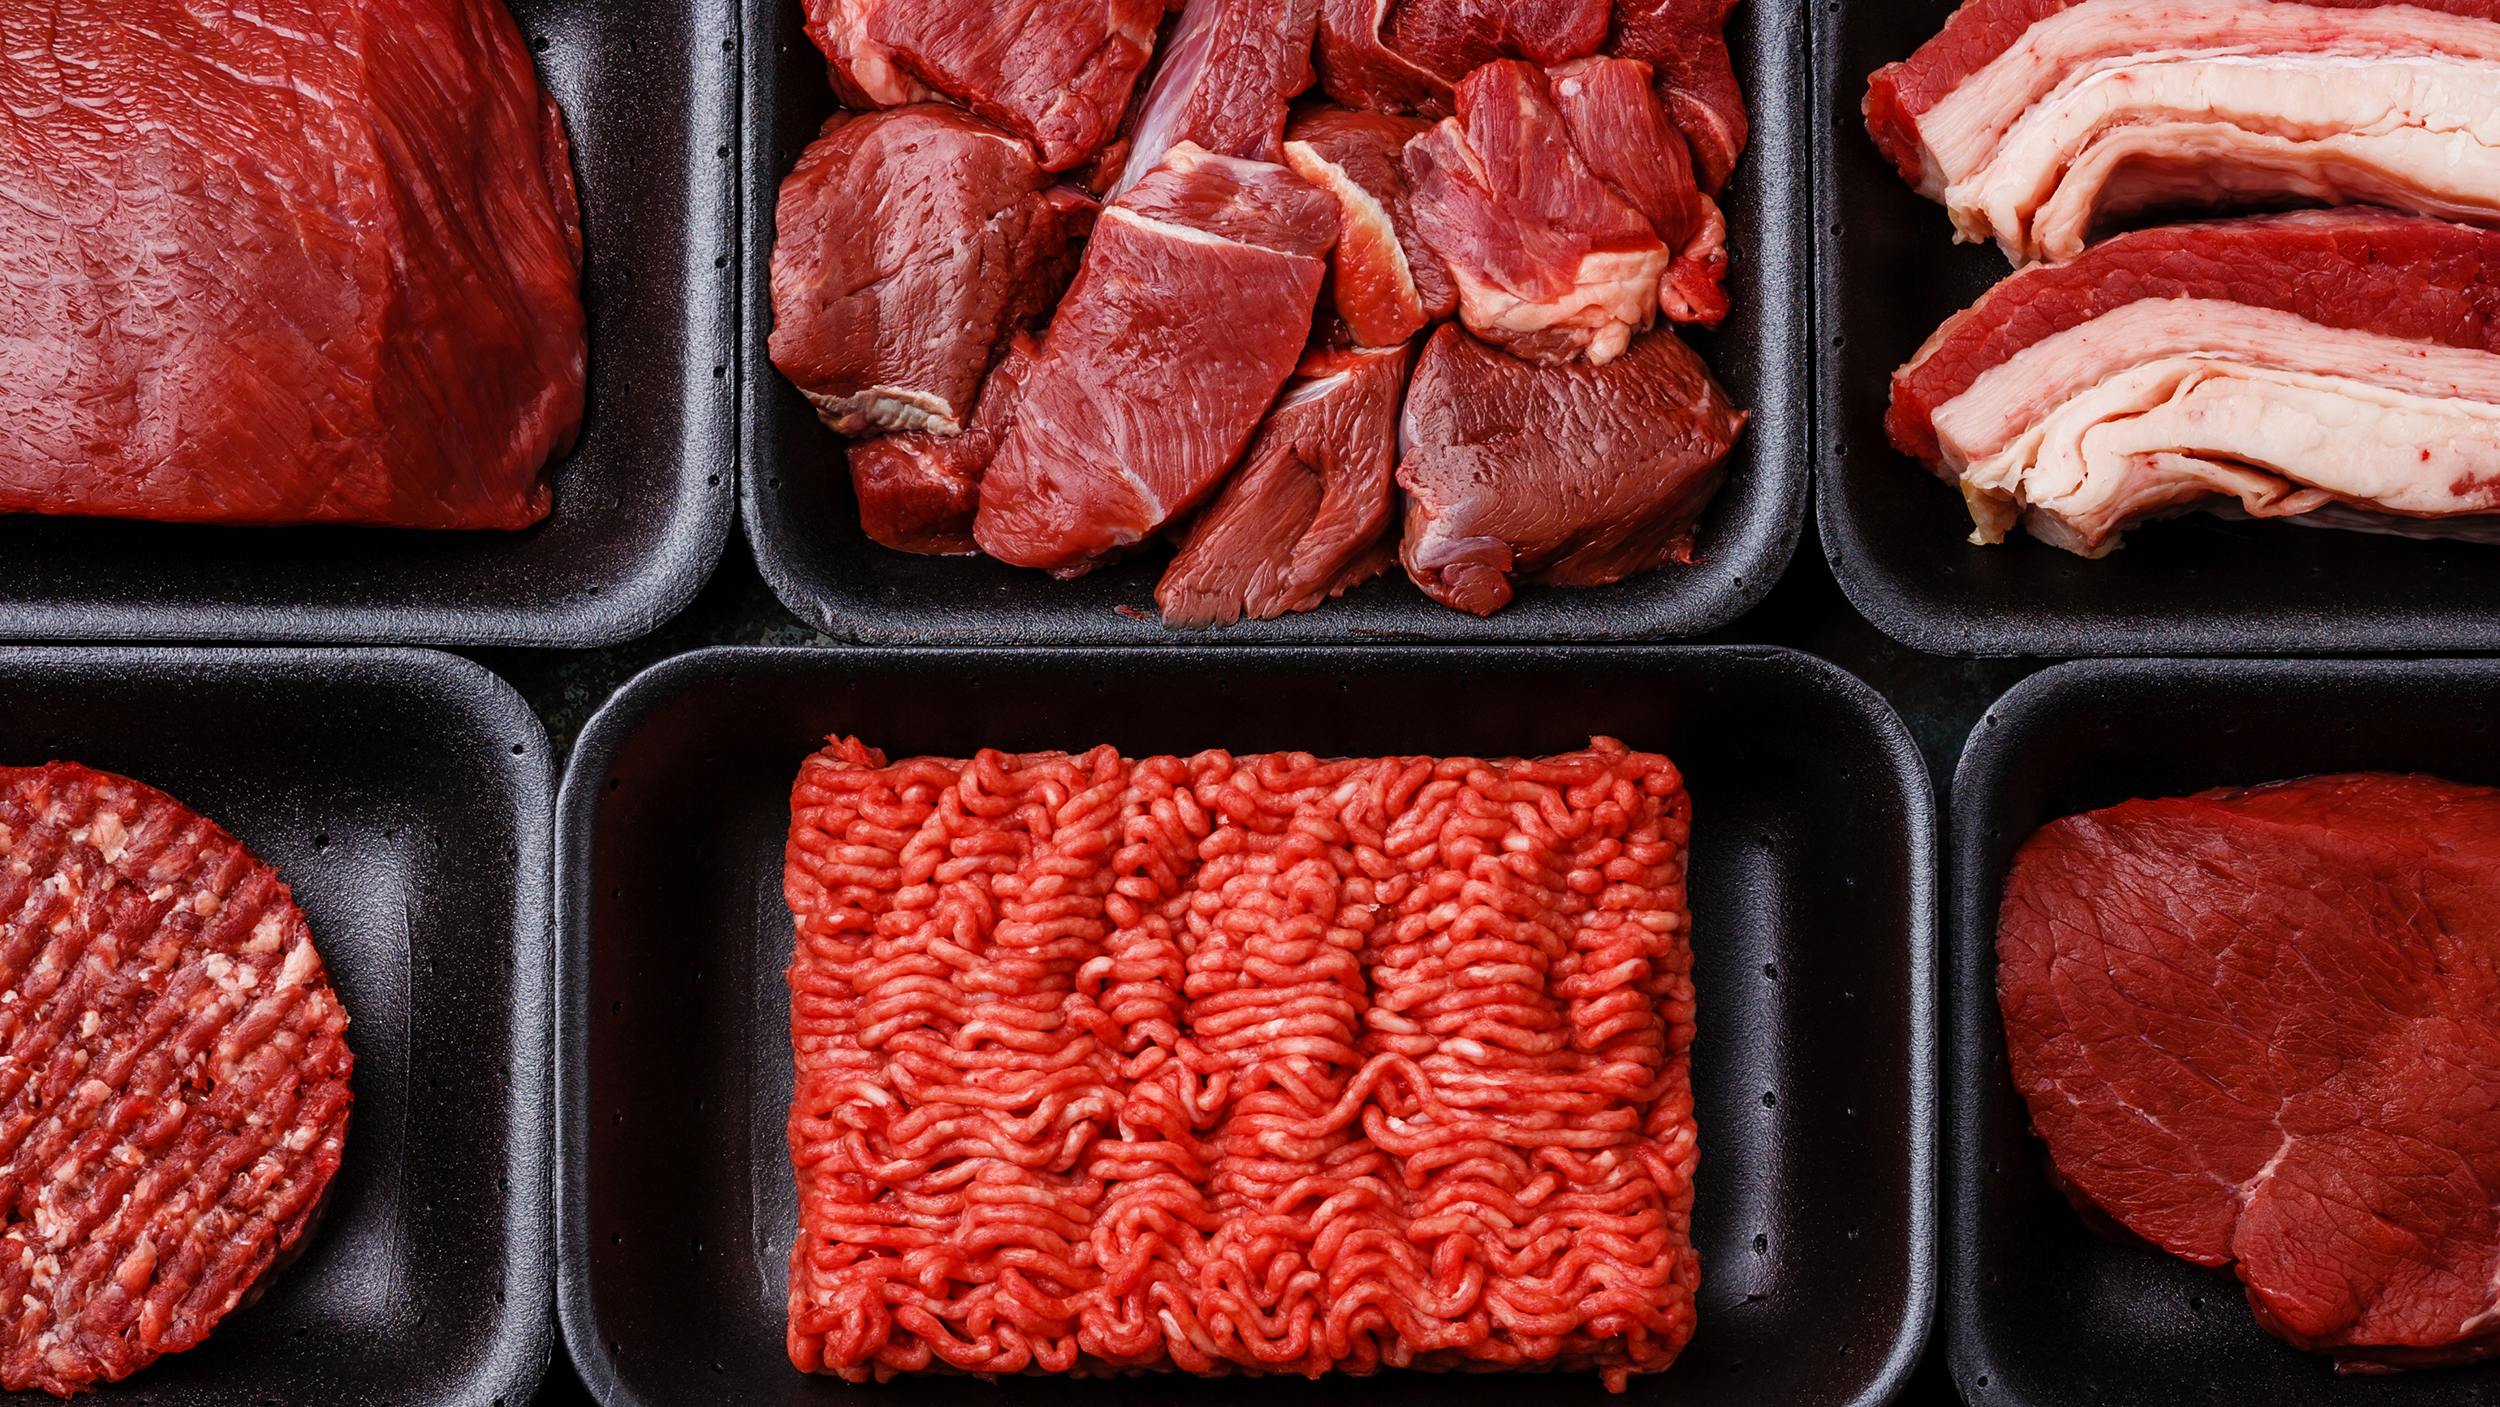 Red meat safety